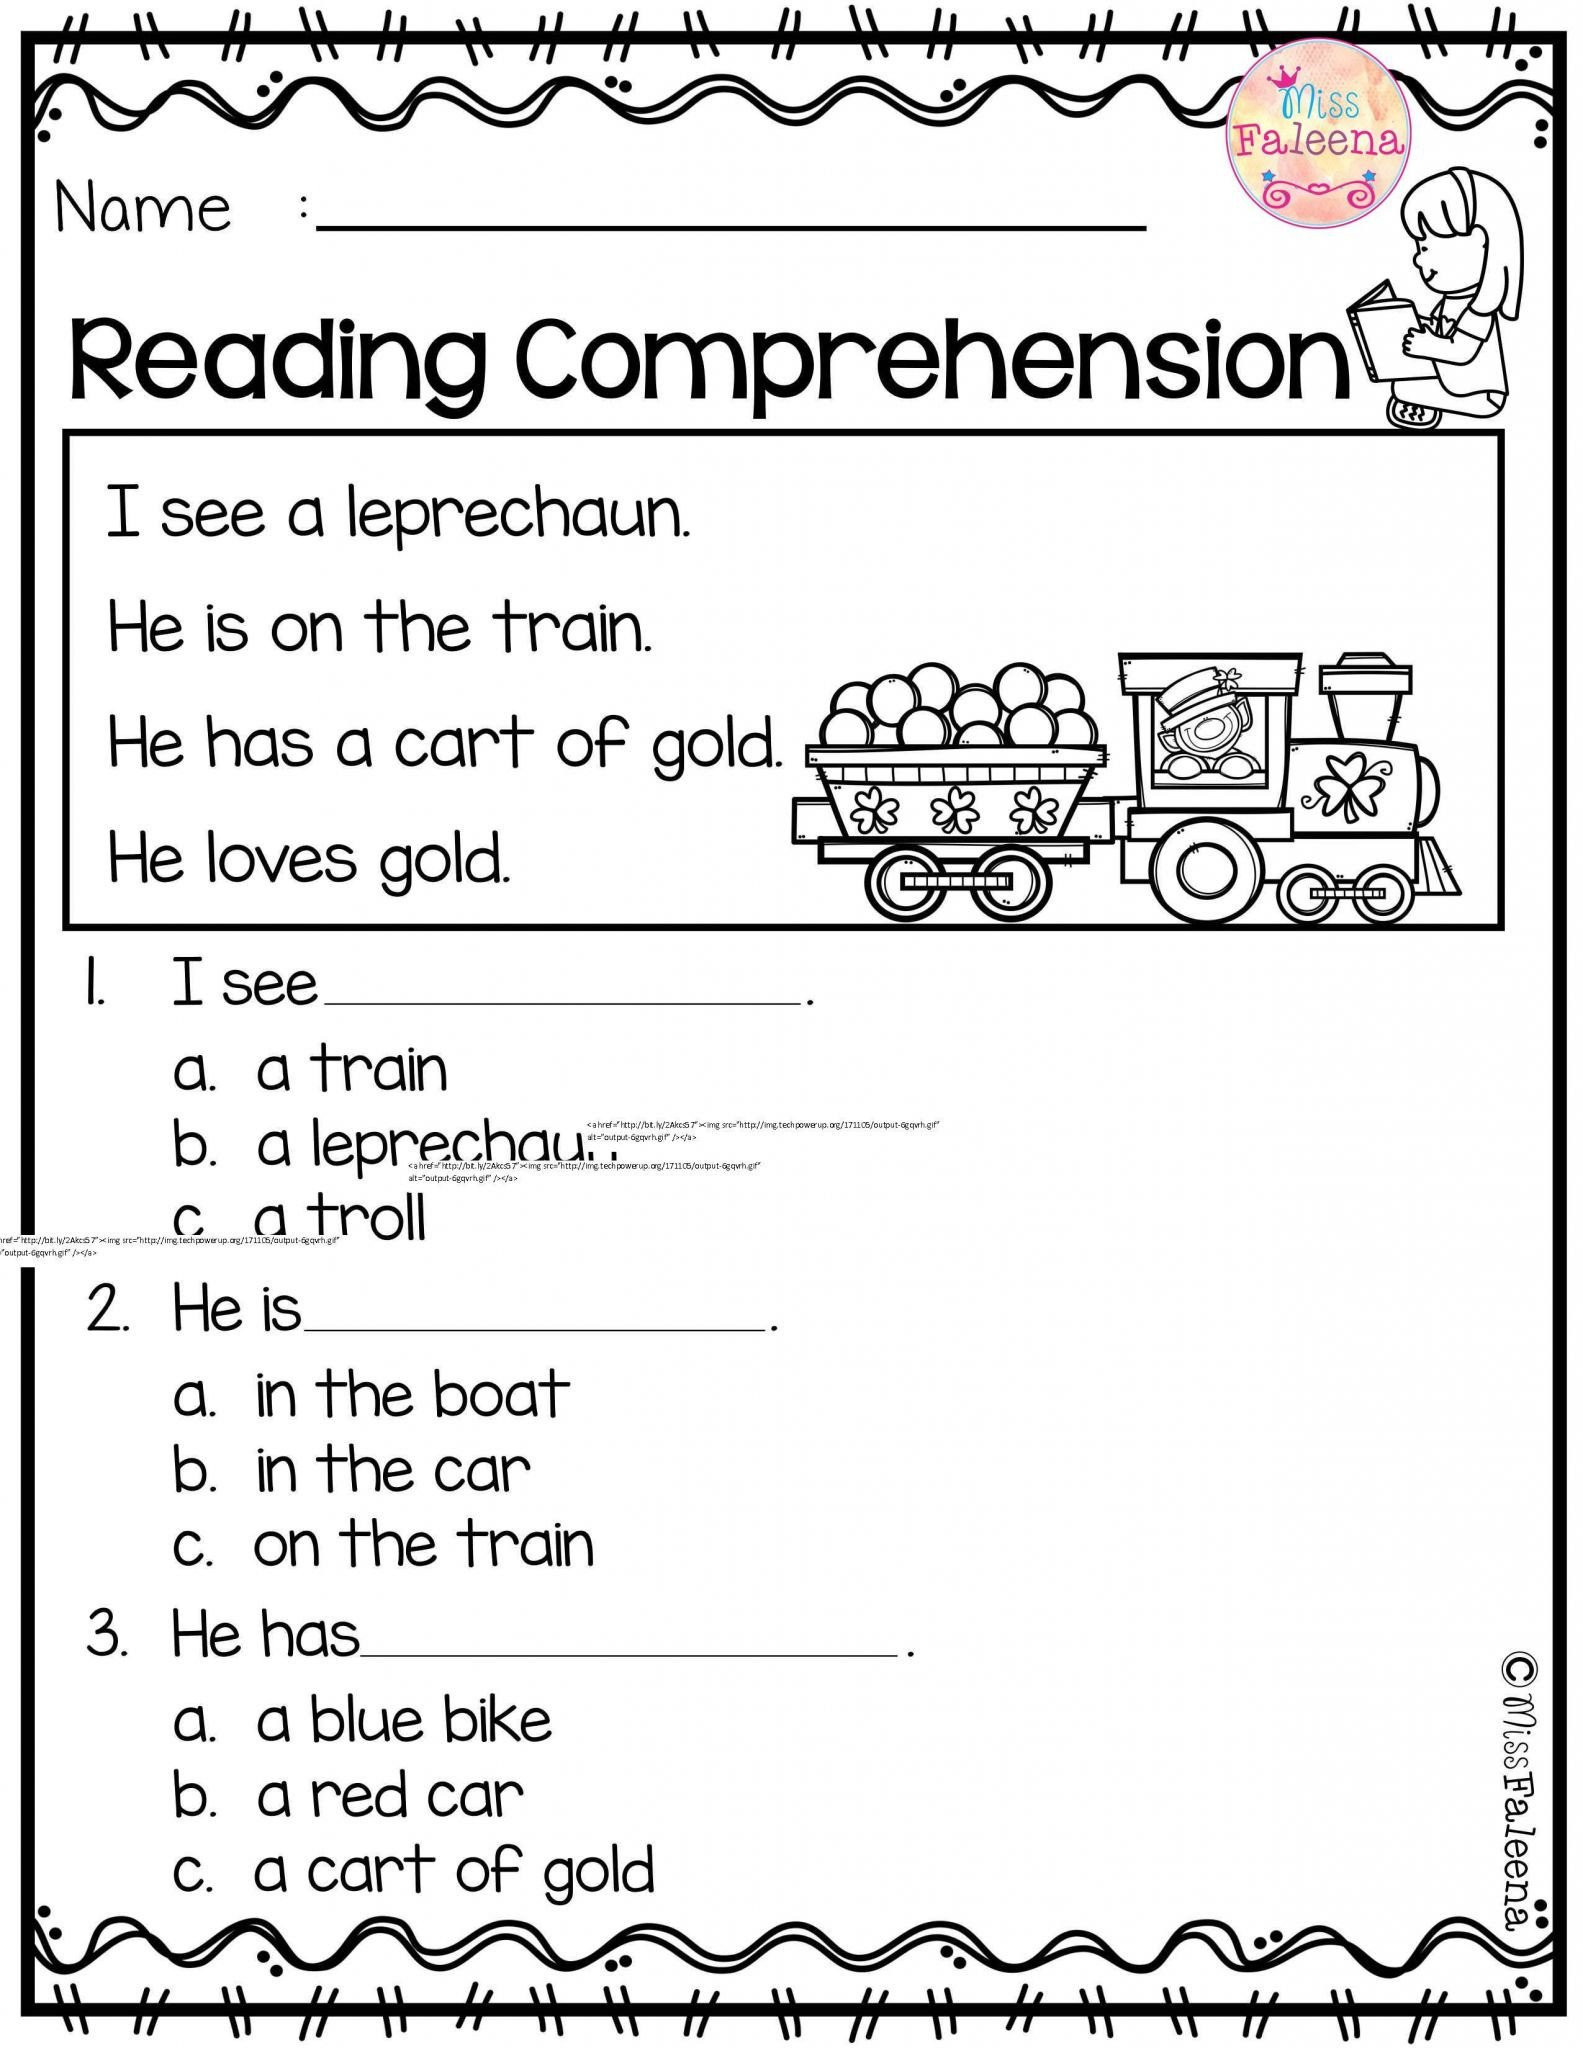 Dialogue Worksheets 3rd Grade Dialogue Worksheets 3rd